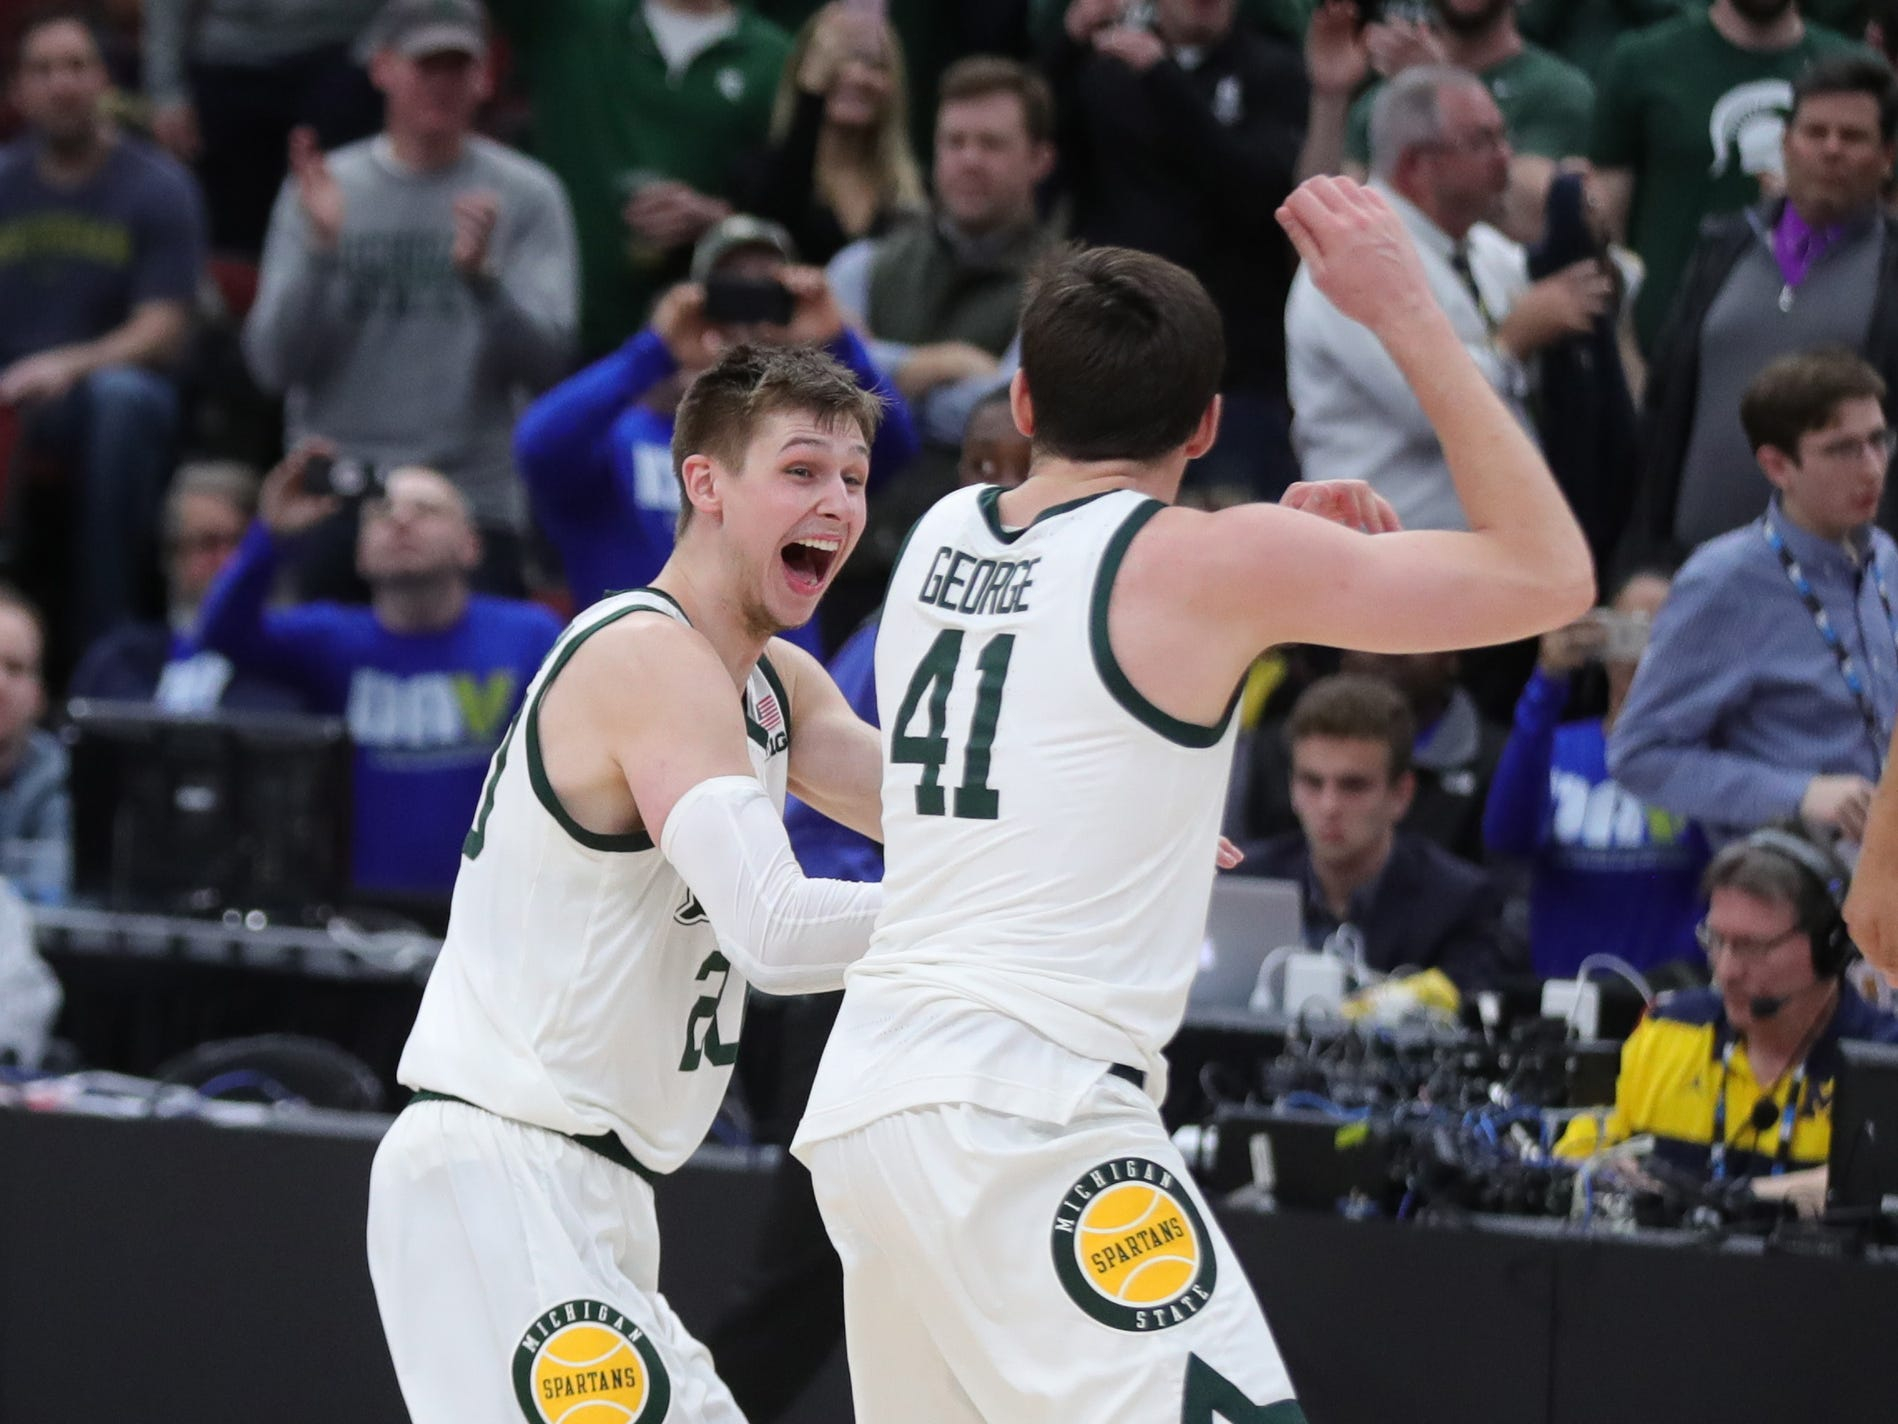 Michigan State's Matt McQuaid, left, and Connor George celebrate the 65-60 win against Michigan in the Big Ten tournament championship Sunday, March 17, 2019 at the United Center in Chicago.